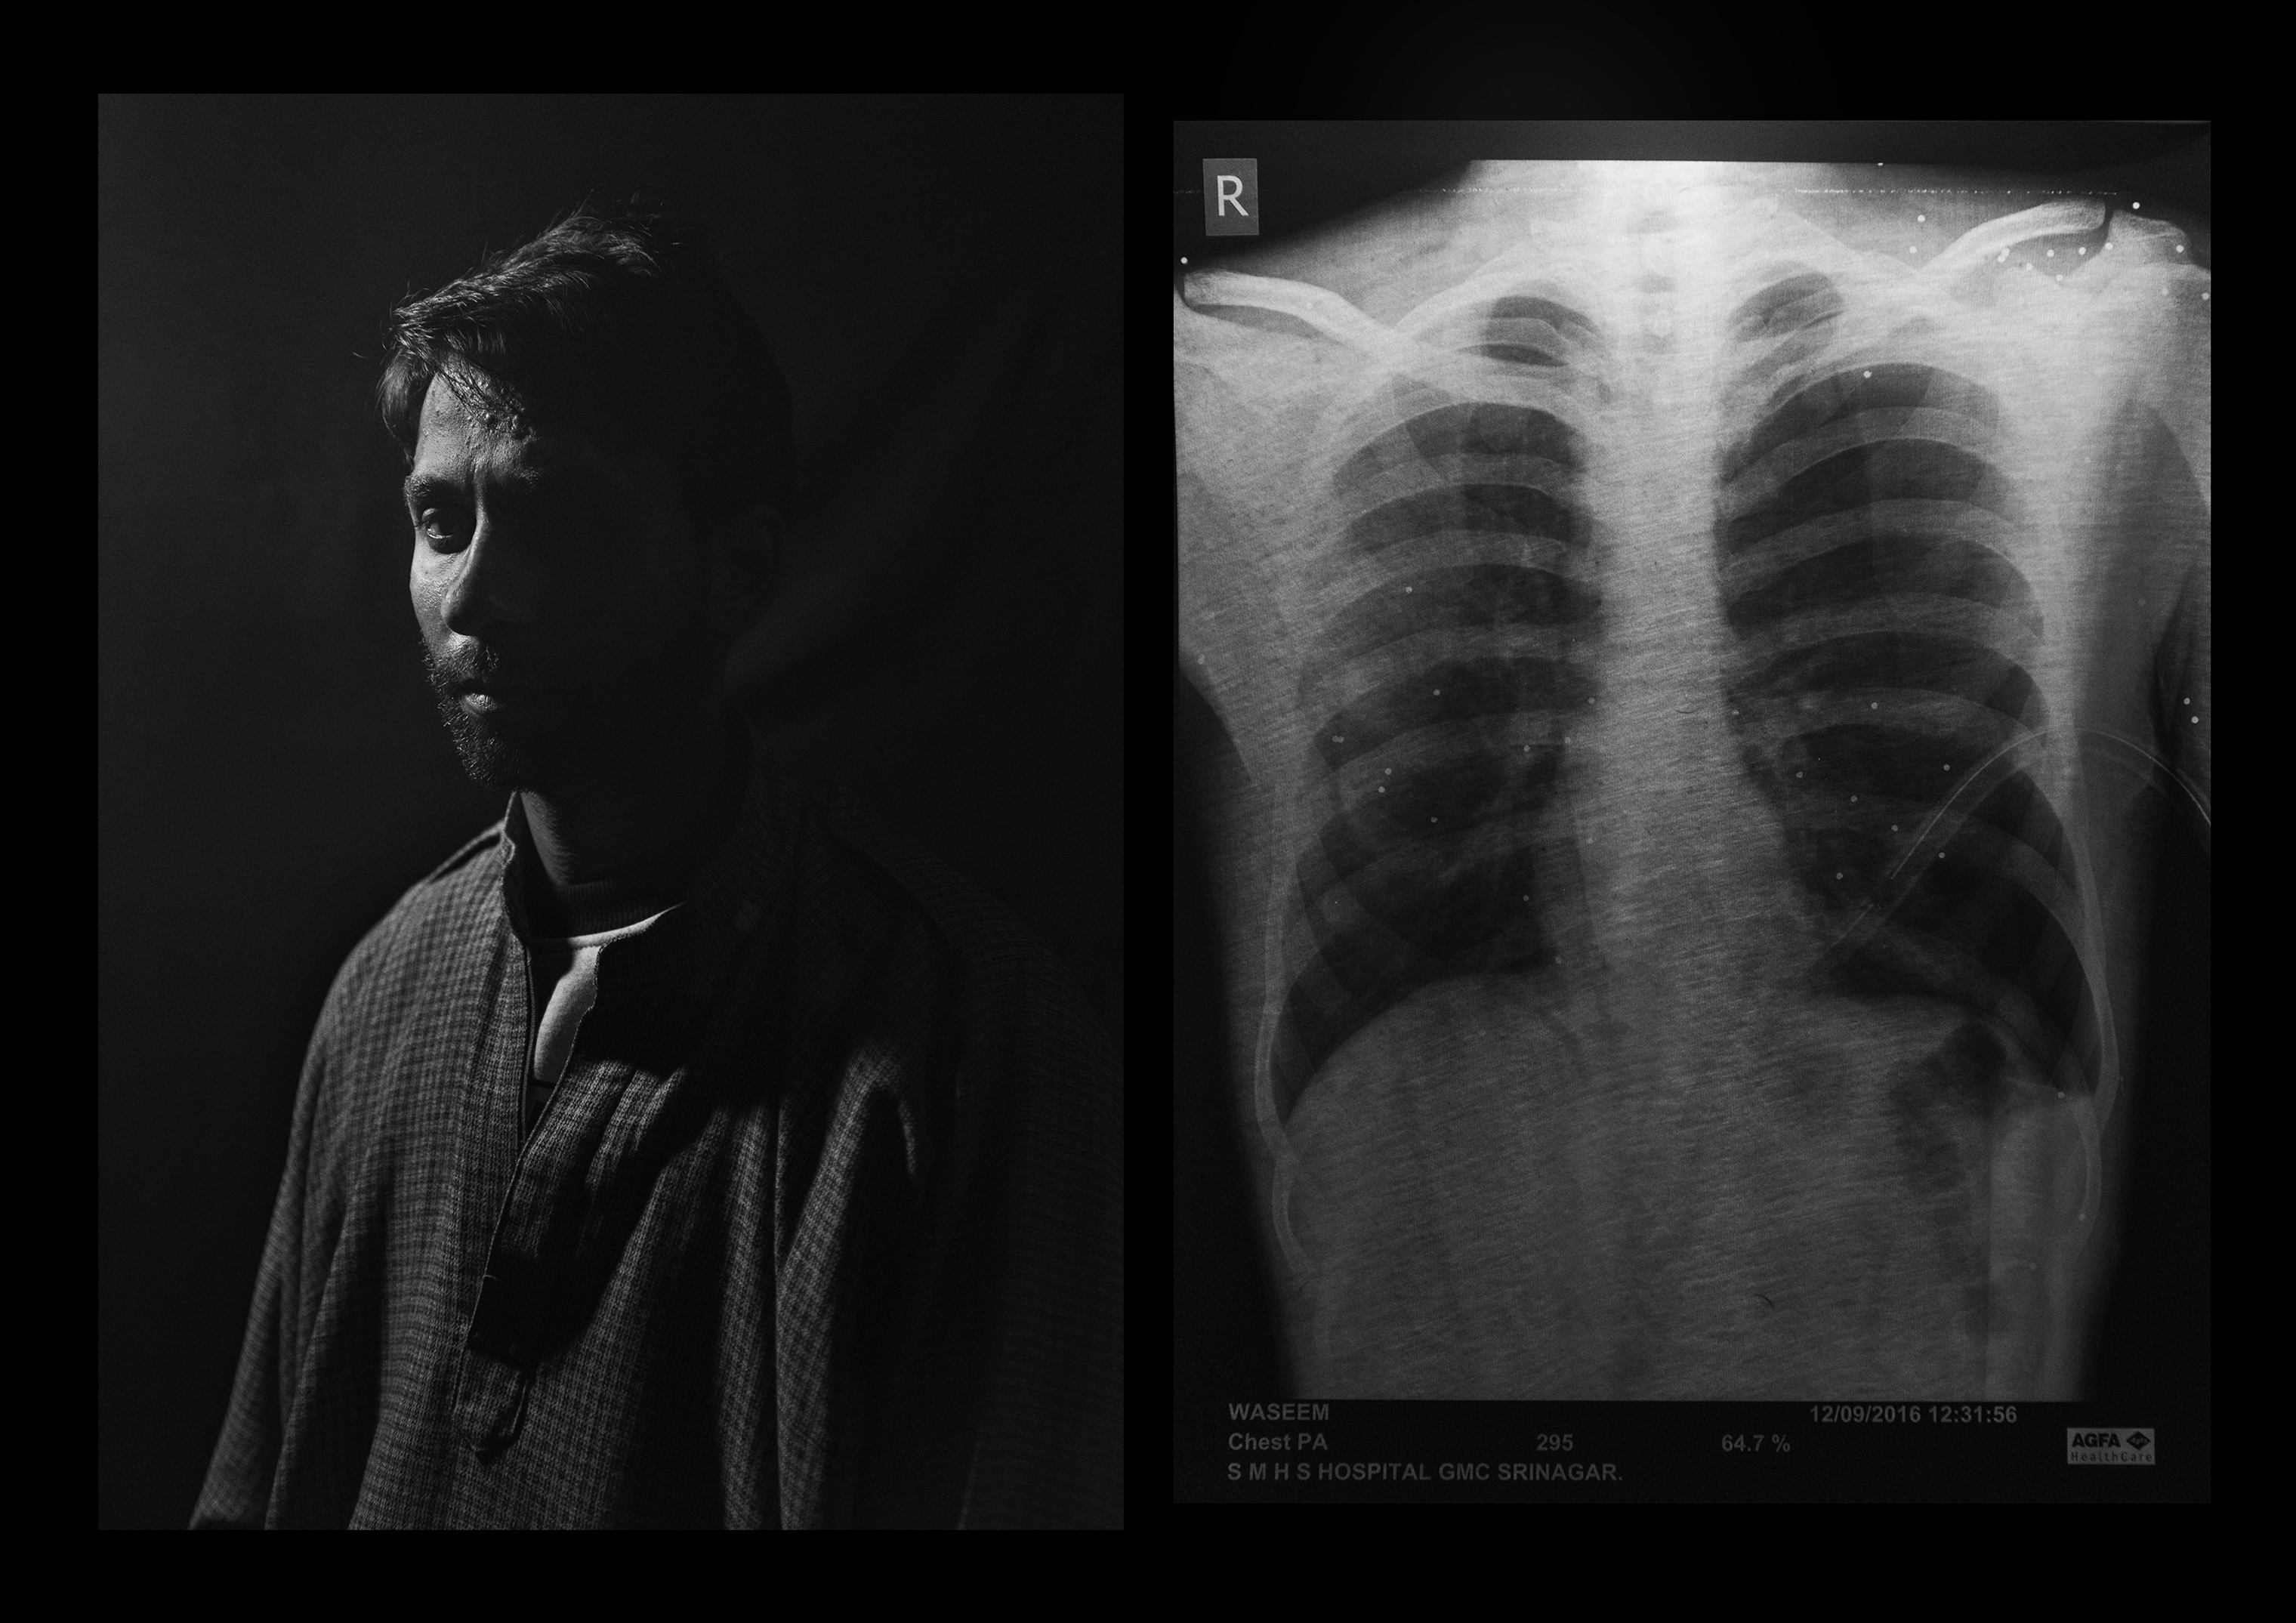 Shabkal Nazir Waseem, 25 years old, from Bijbehera. Police left him with one hundred pellets all over his upper body when they shot him on the Muslim holiday of Eid. Two lodged in each eye, leaving him almost totally blind. Four people were blinded by pellet guns in Kashmir on the day he was shot, he told Pasquarelli.